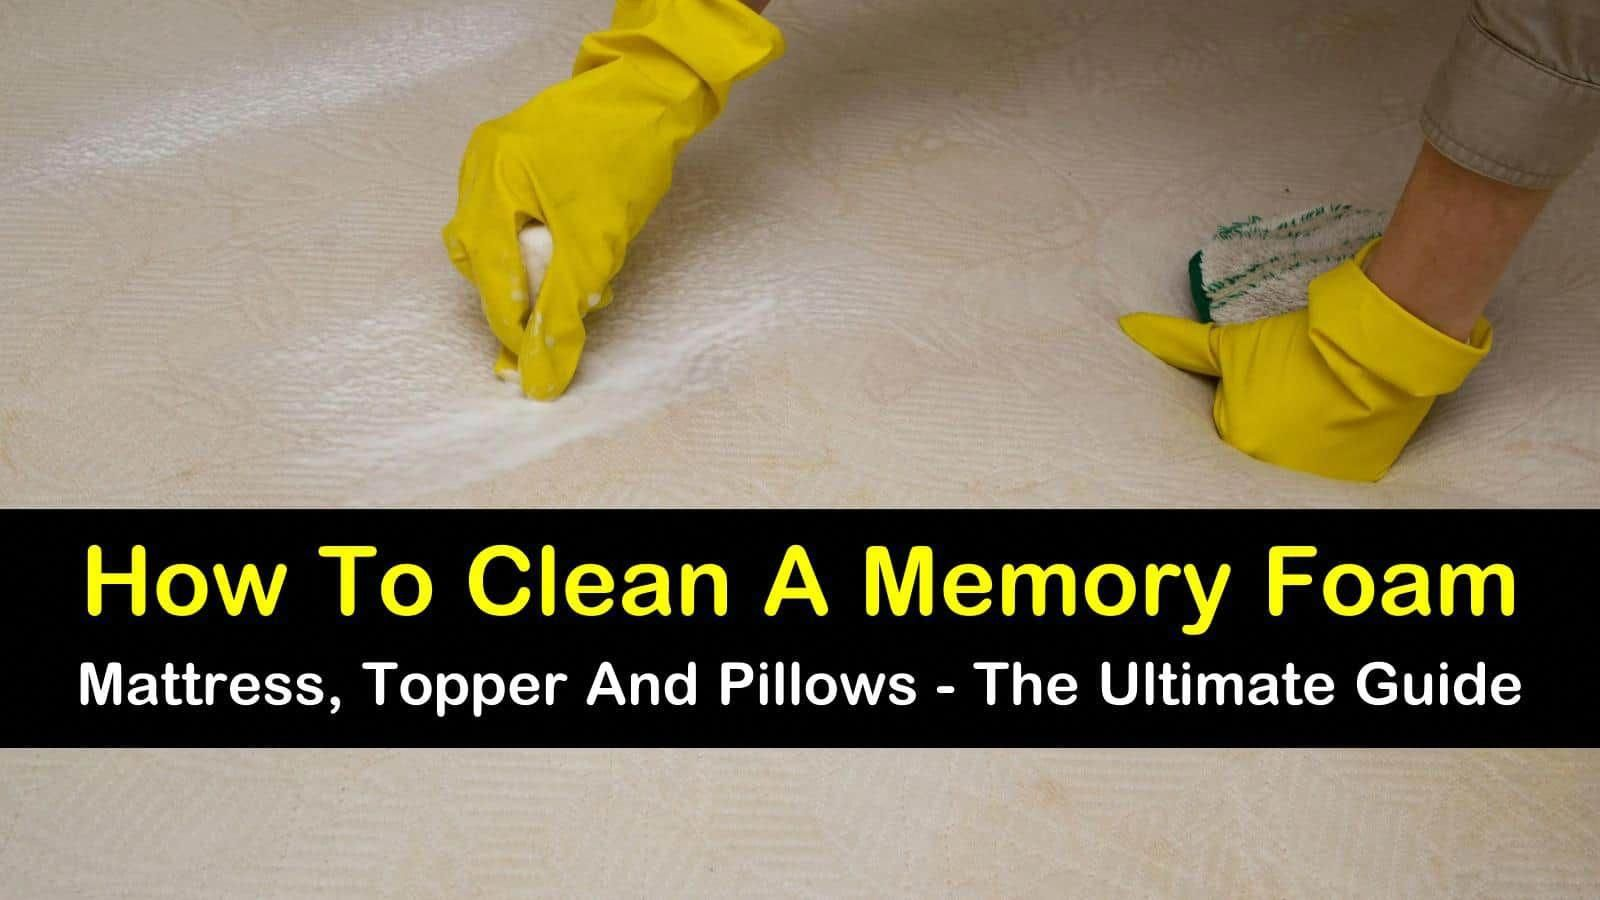 How to clean a memory foam mattress topper and pillows